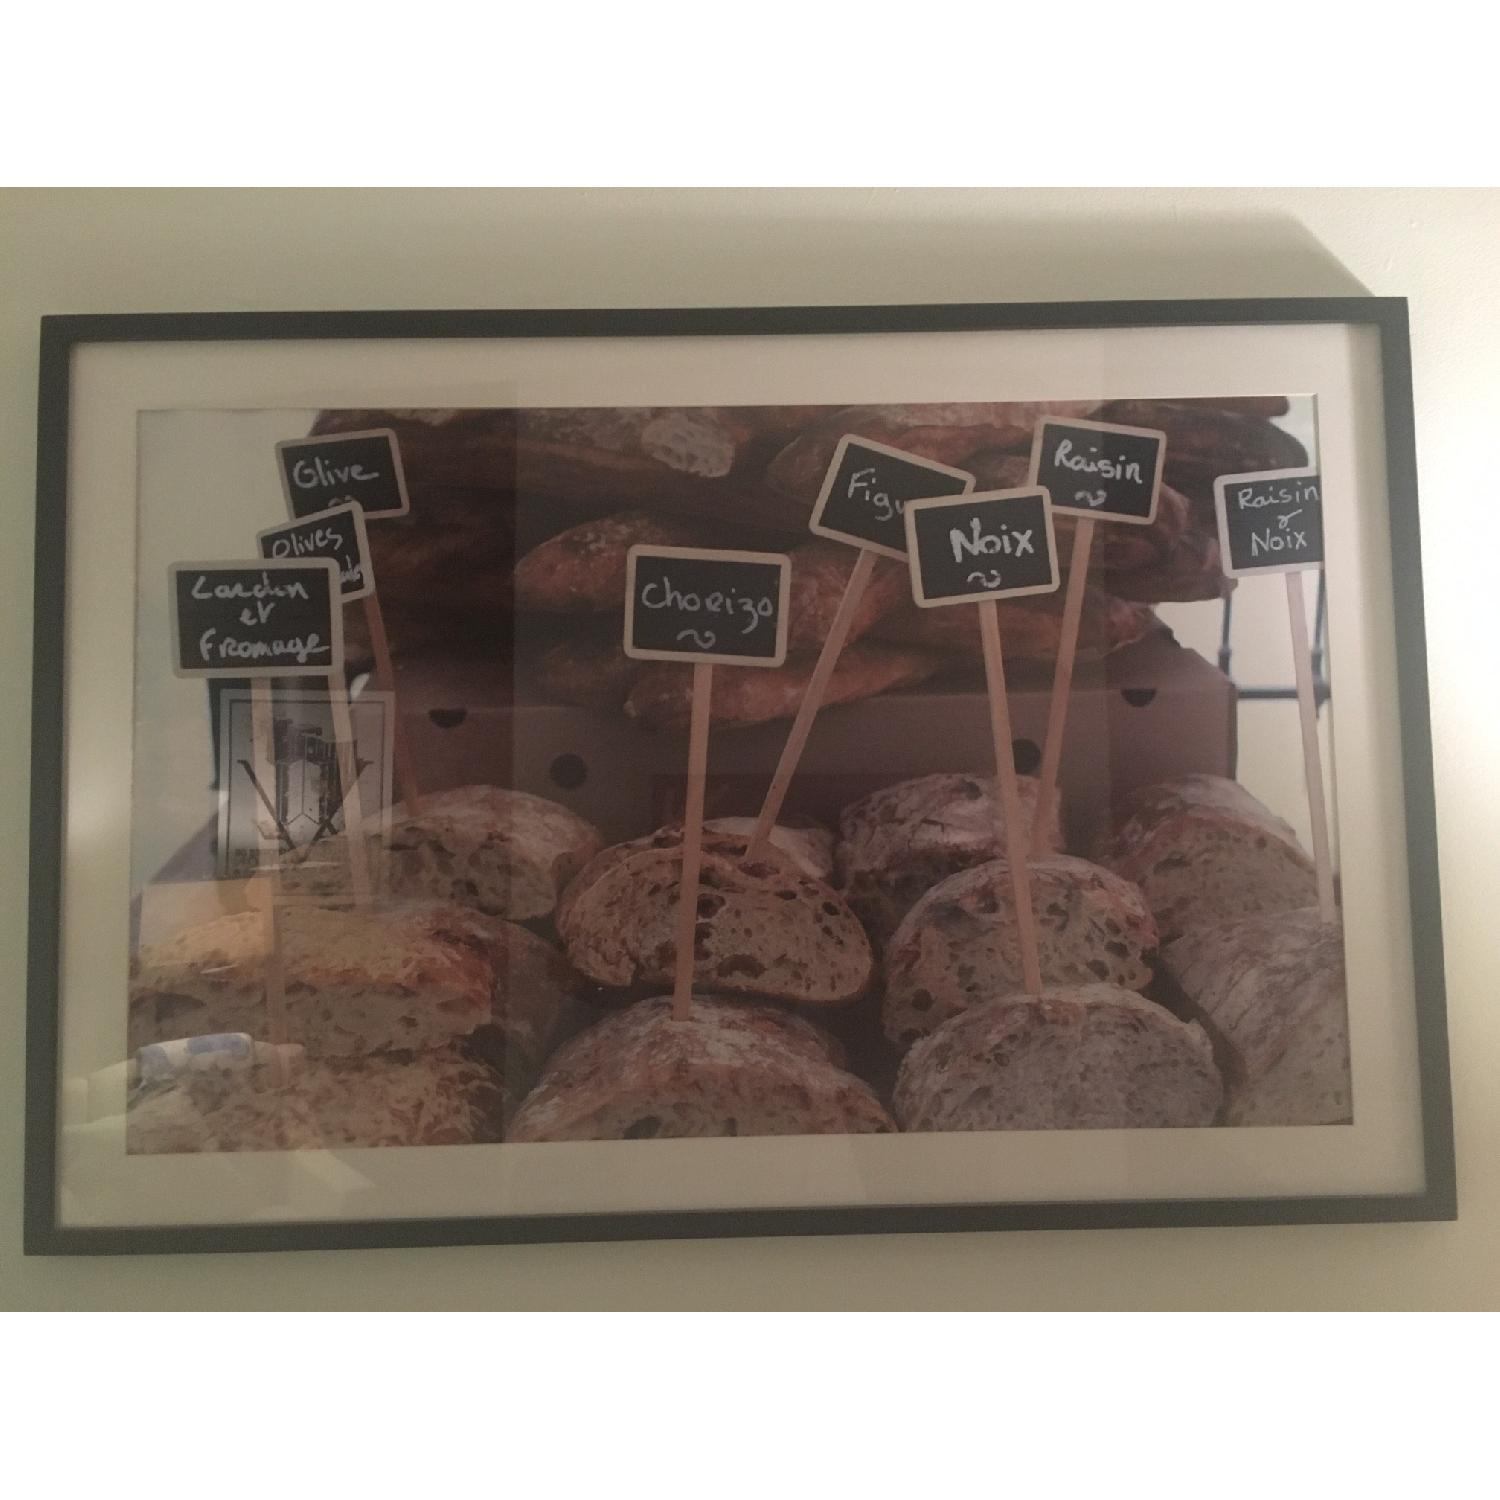 Pottery Barn Framed French Market Days Picture - image-2